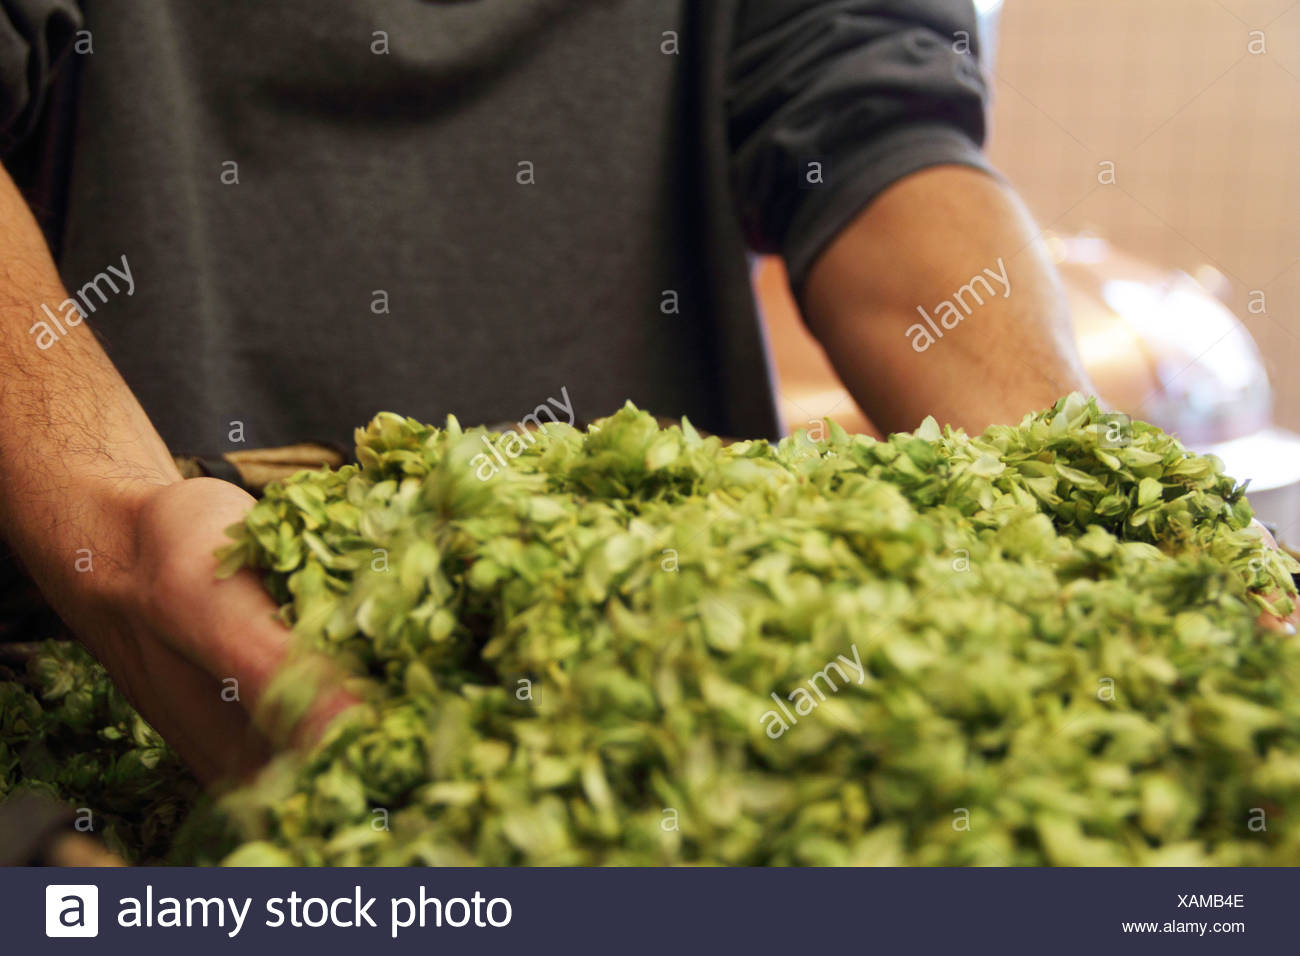 Man holding hops in brewery - Stock Image